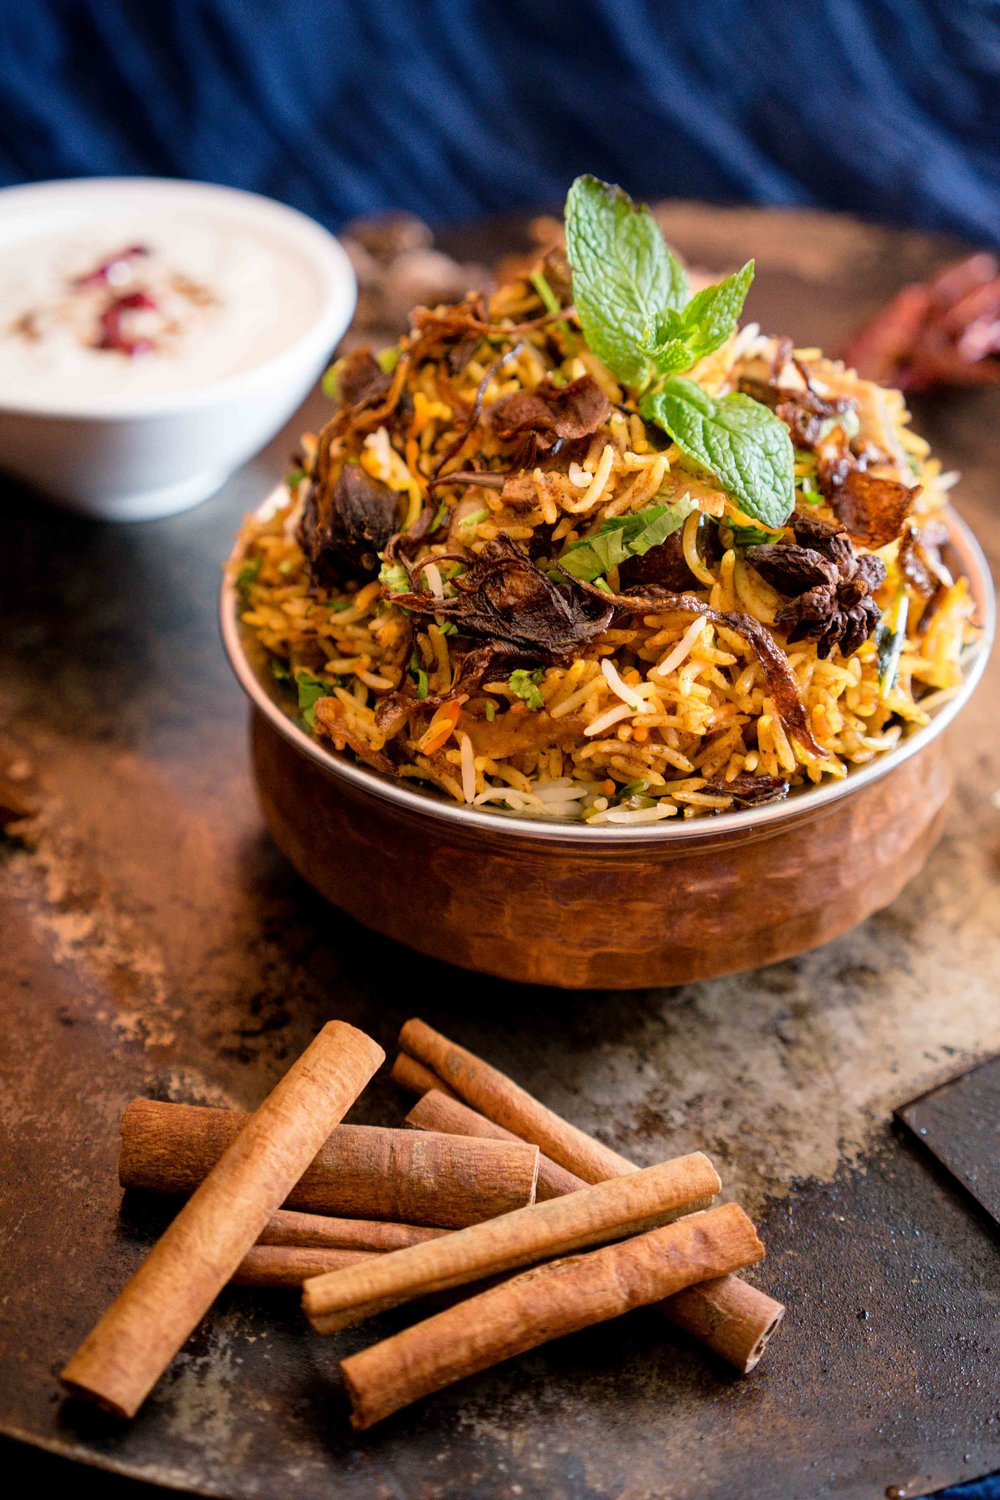 Goat Biryani - Slow cooked flavored rice with fresh herbs, saffron and rose water served with raita